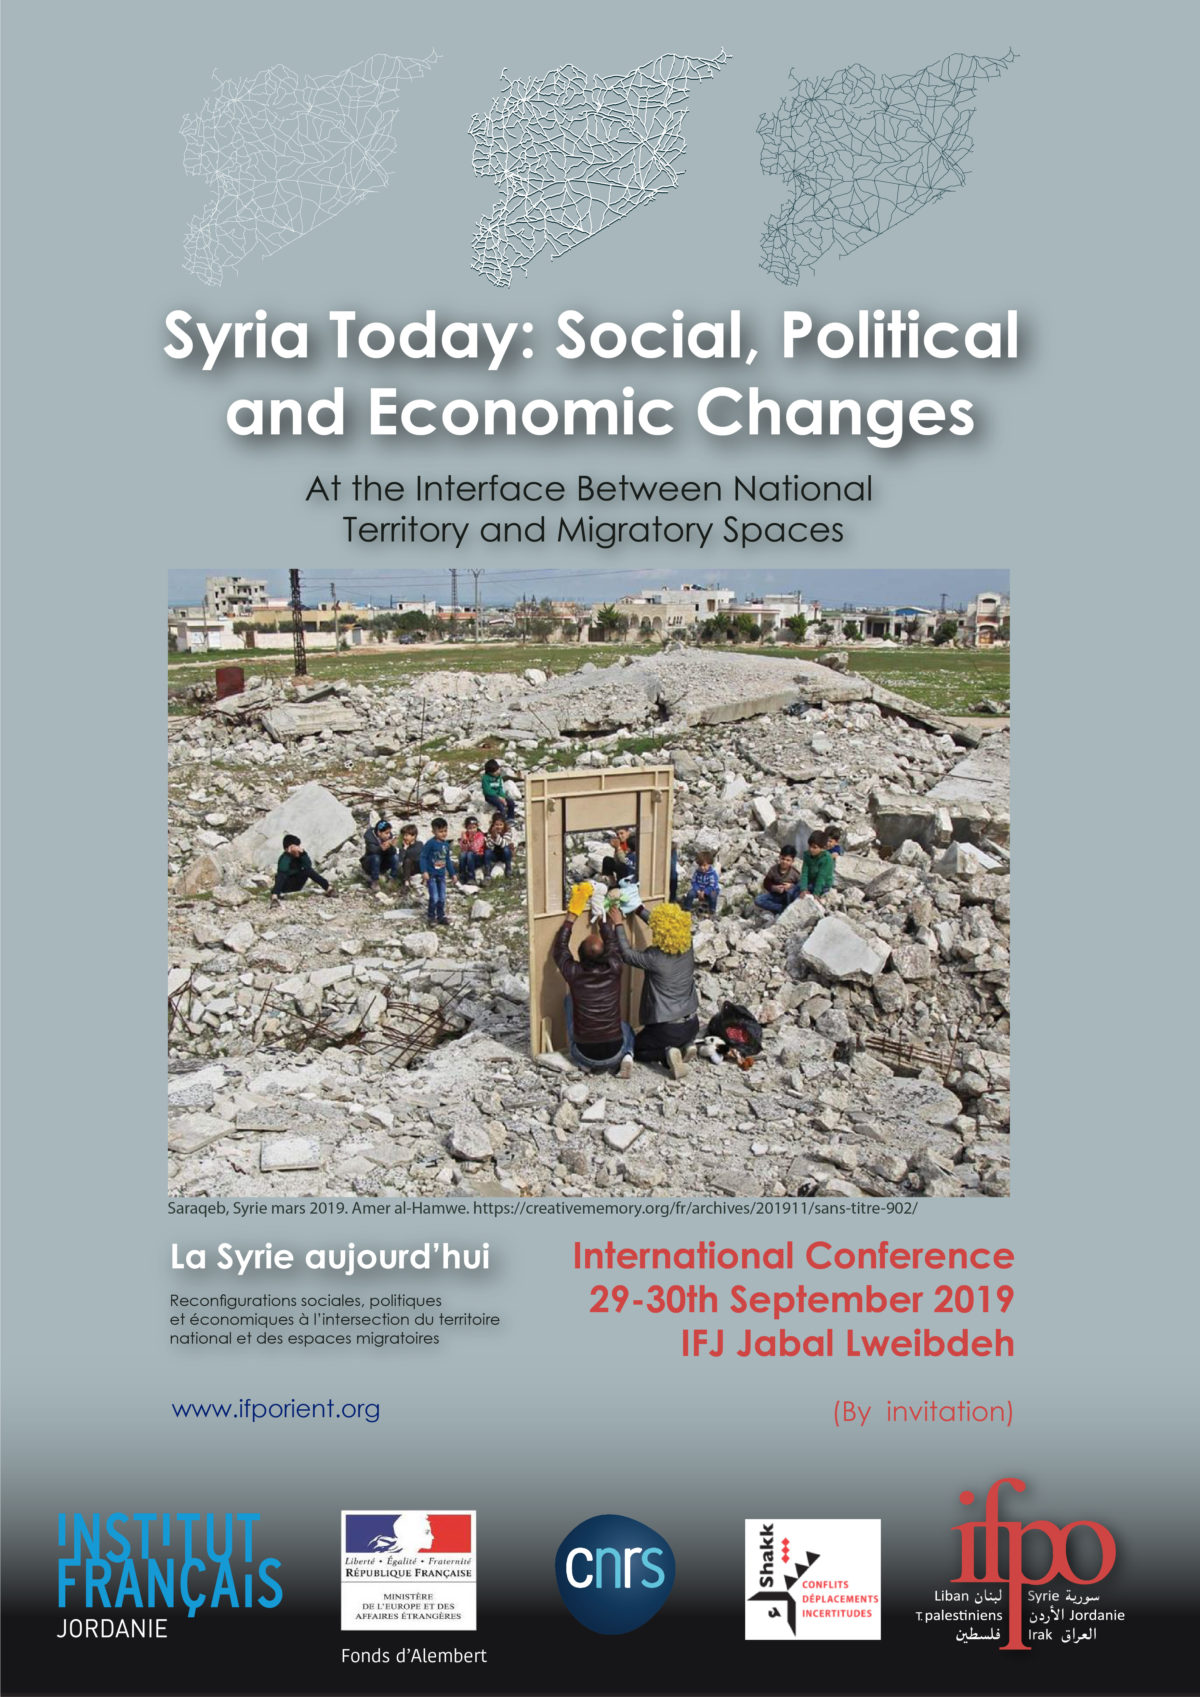 Syria Today Social, Political and Economic Changes At the interface between National Territory and Migratory Spaces